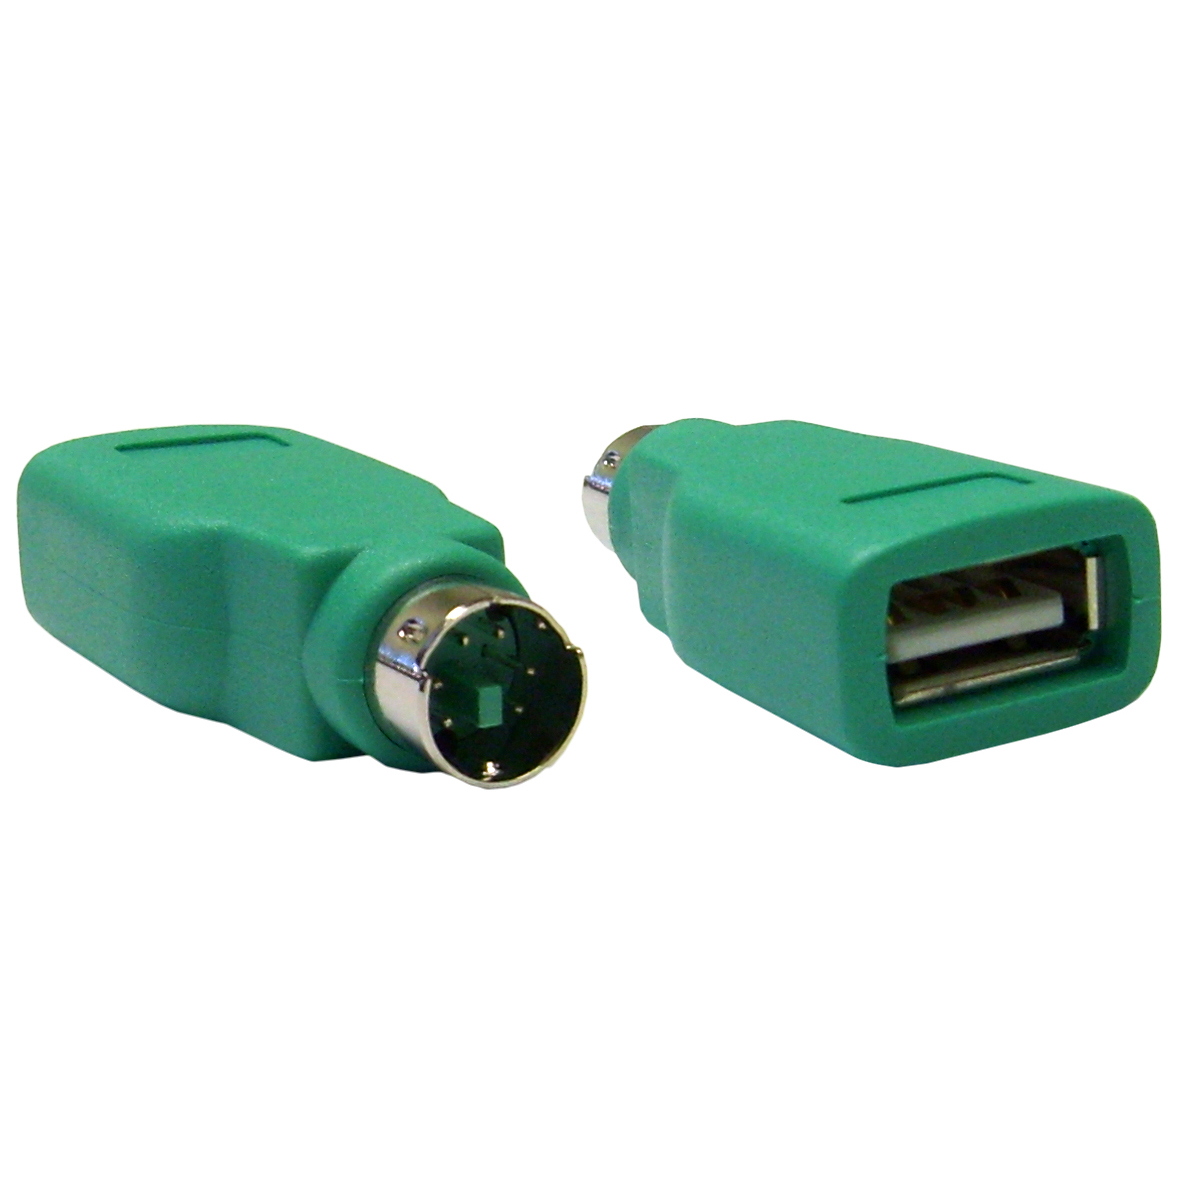 hight resolution of usb to ps 2 keyboard mouse adapter green usb type a female